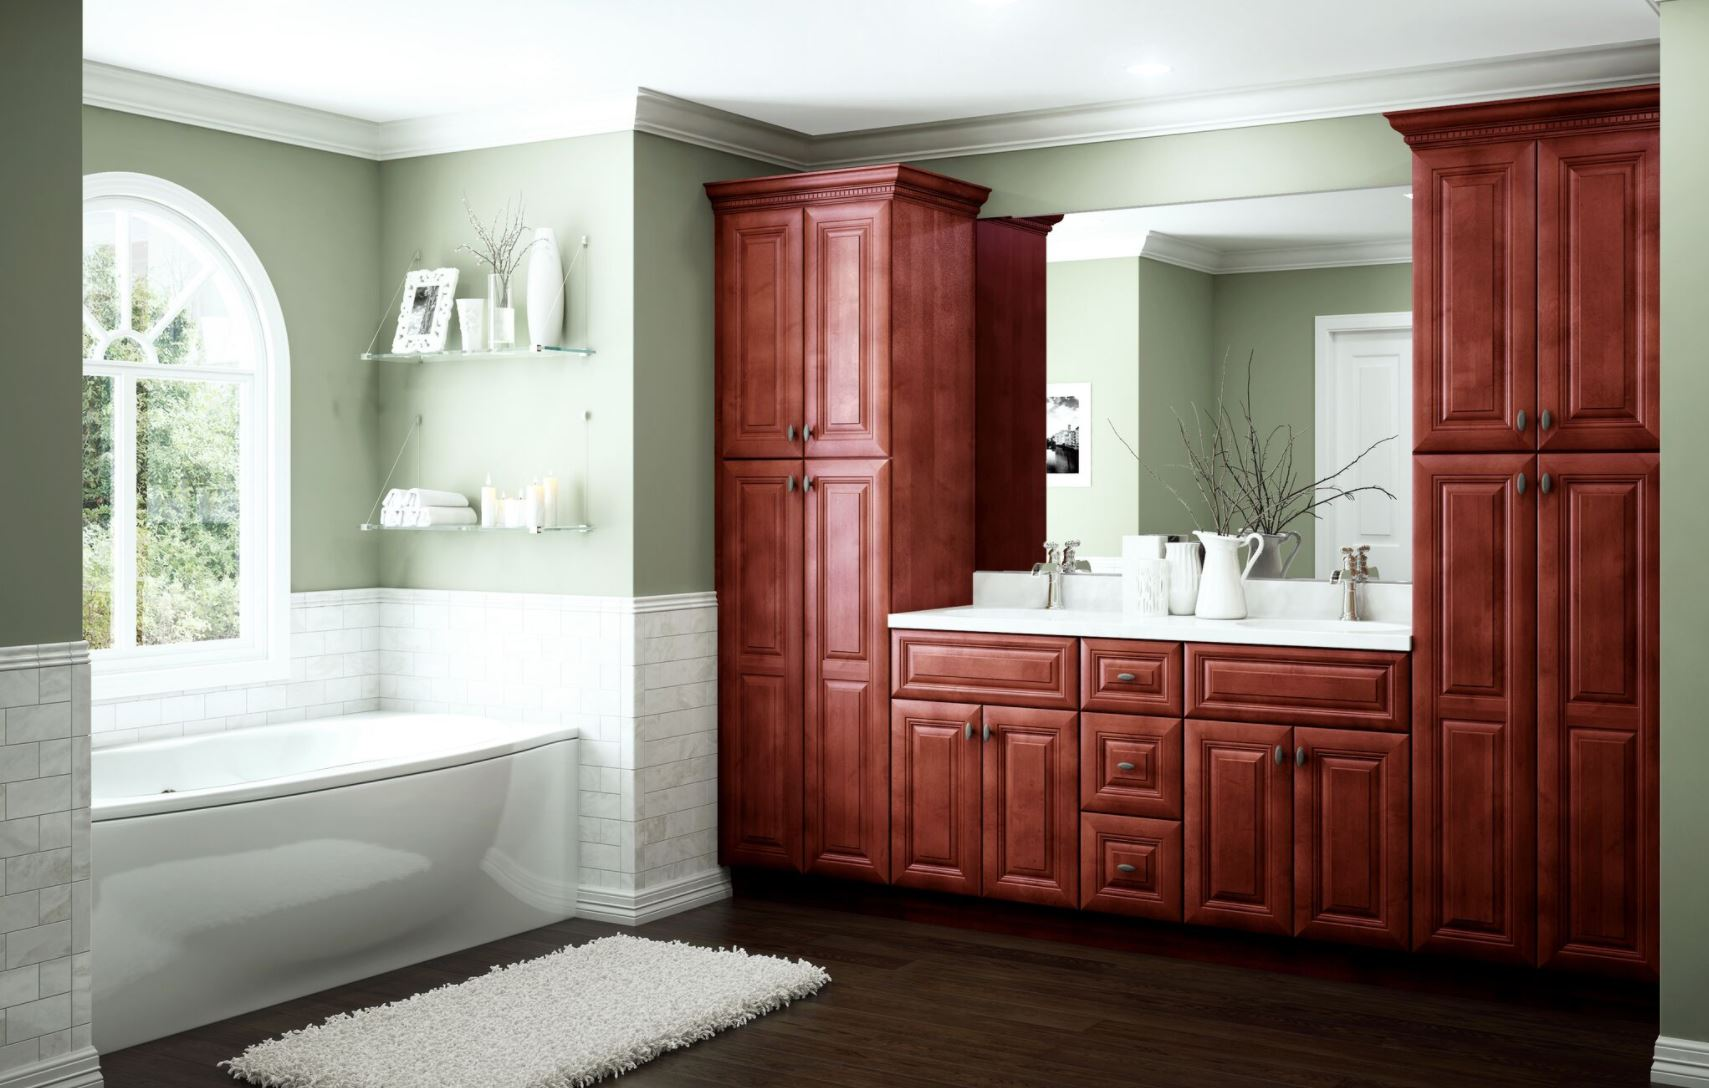 Home Decorators Vanities: Lyndhurst Cabinet Accessories In Cabernet